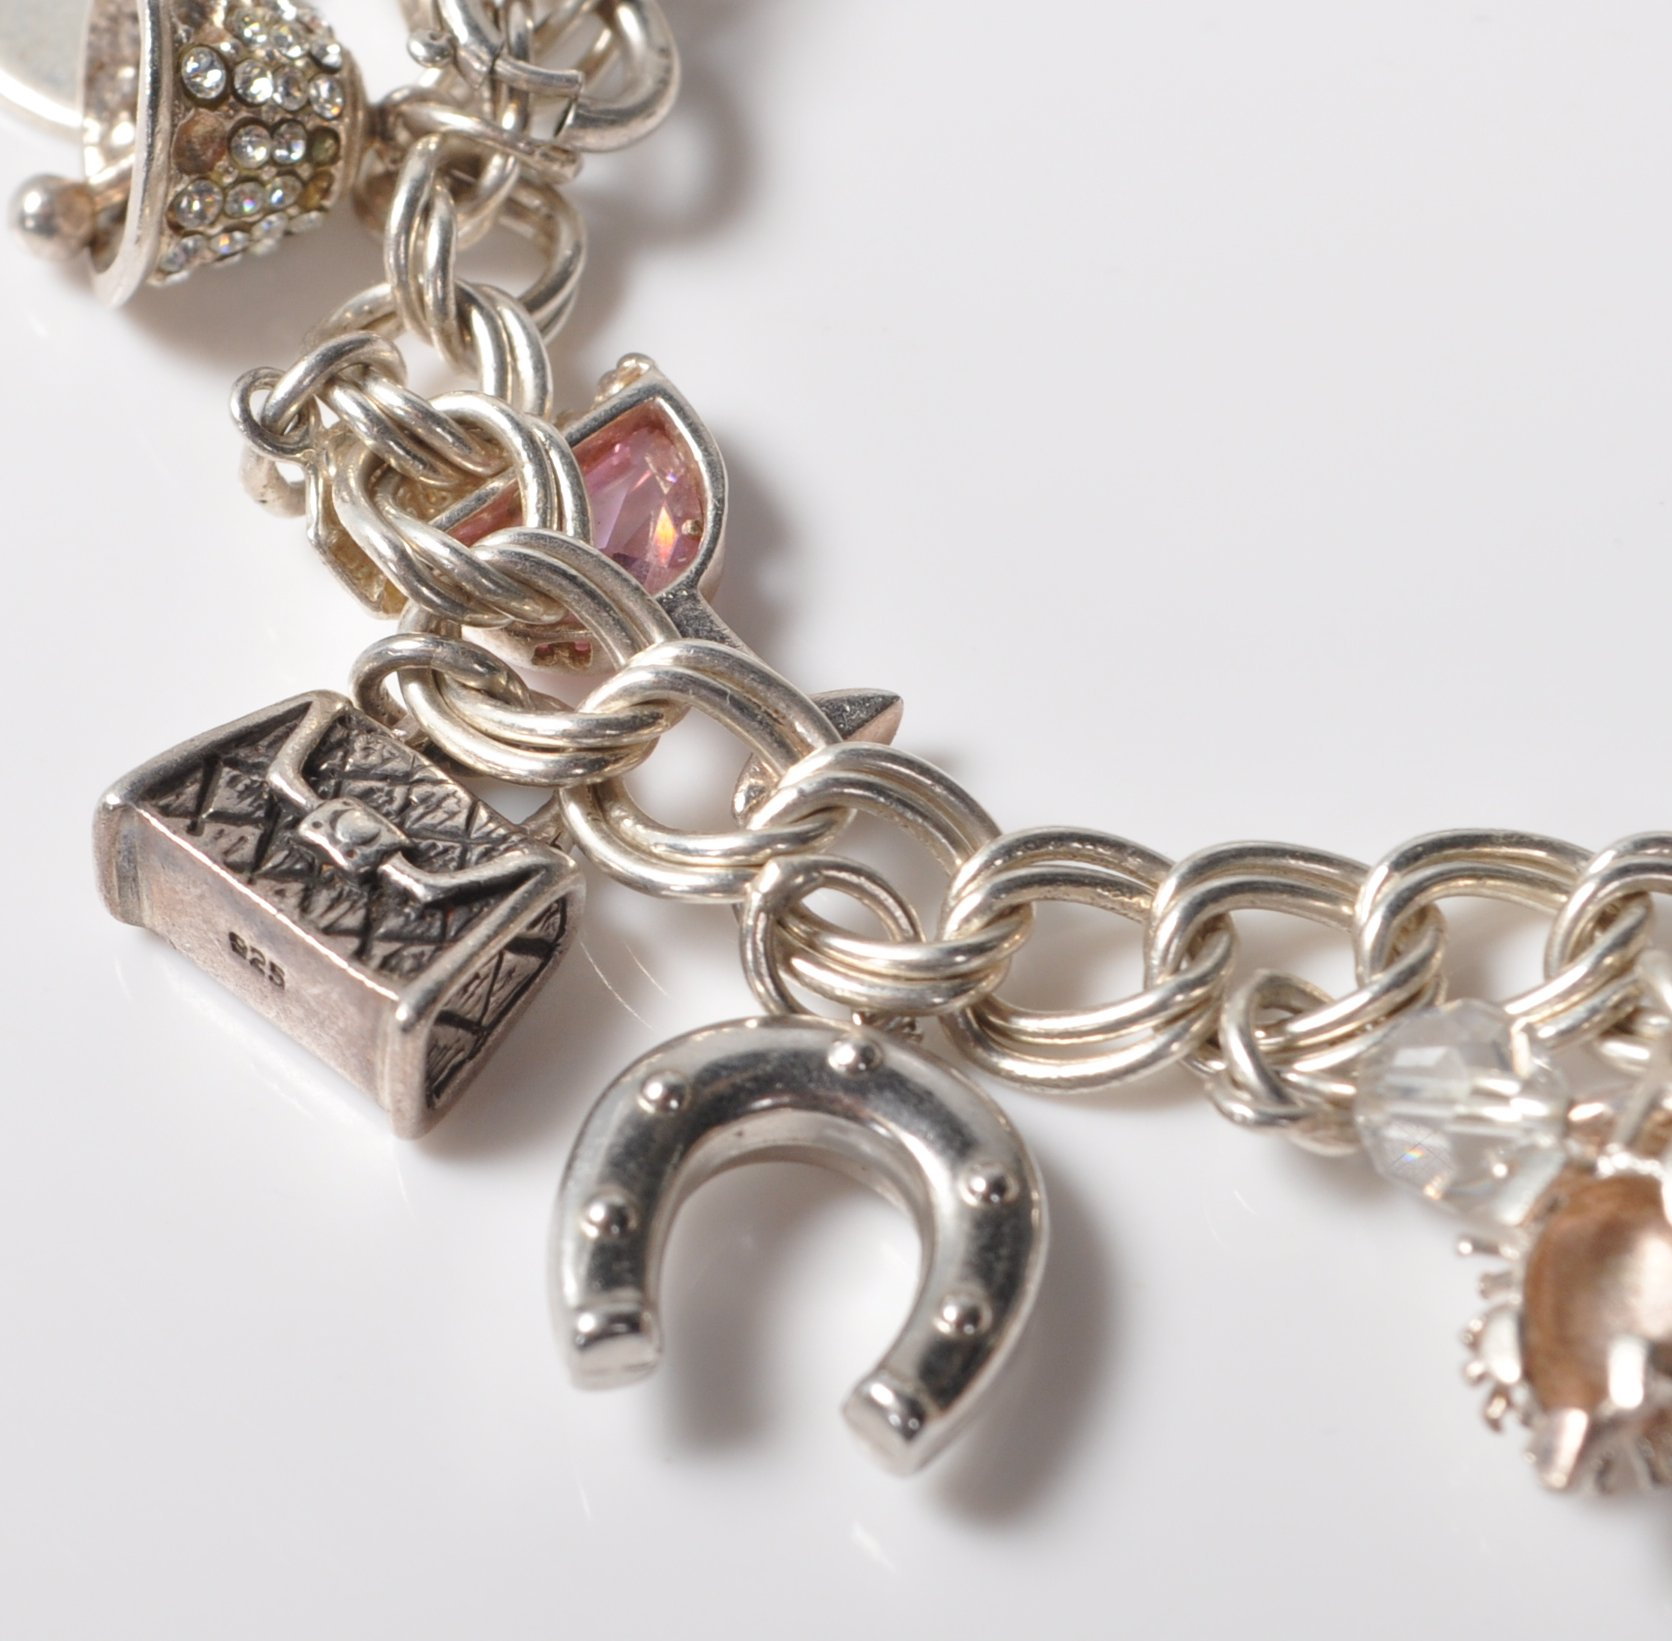 SILVER STAMPED 925 CHARM BRACELET. TOTAL WEIGHT 64 GRAMS. - Image 2 of 8